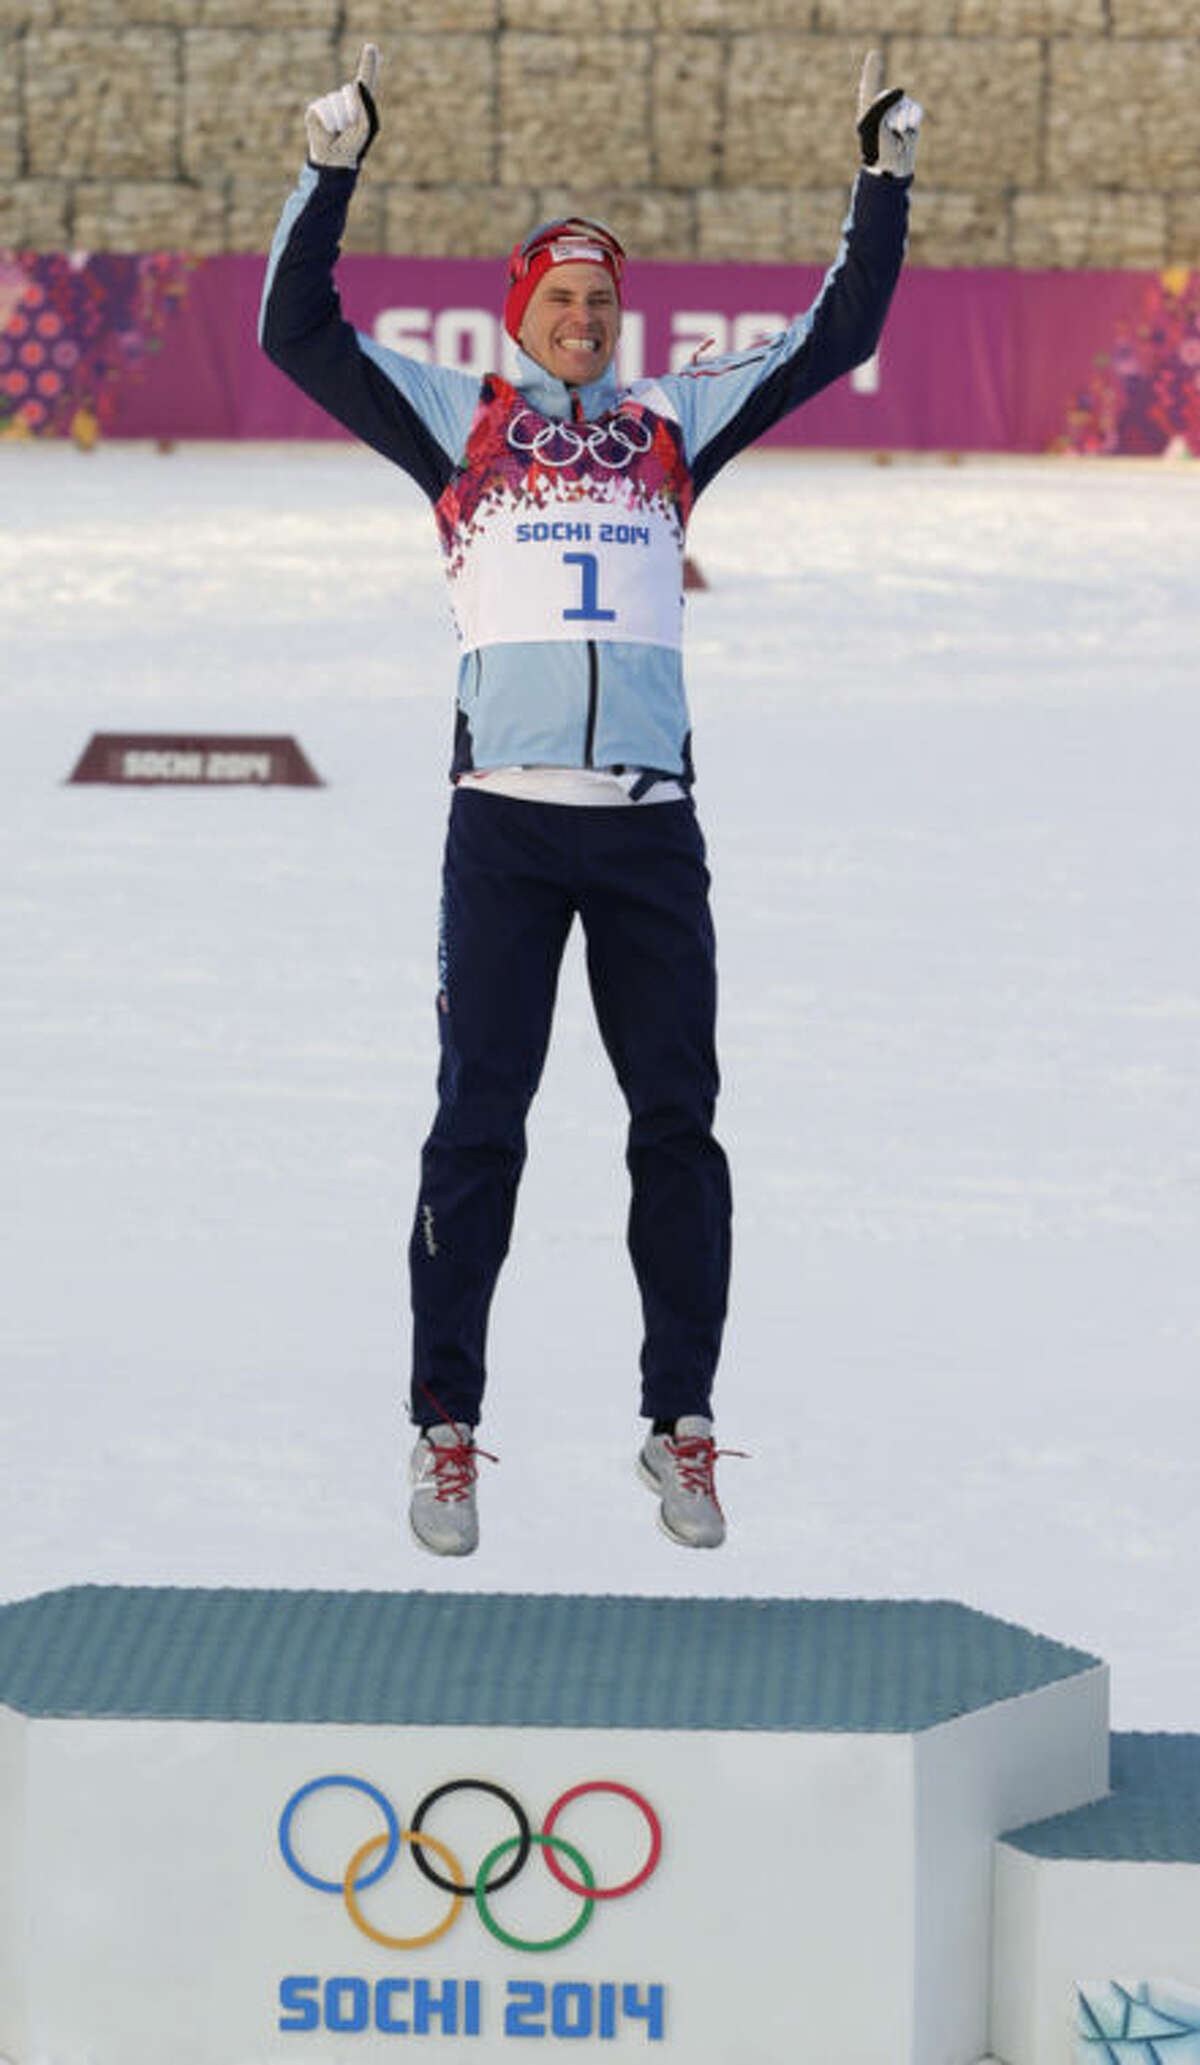 Norway's Ola Vigen Hattestad celebrates winning the gold medal during the flower ceremony for the men's cross-country sprint at the 2014 Winter Olympics, Tuesday, Feb. 11, 2014, in Krasnaya Polyana, Russia. (AP Photo/Matthias Schrader)